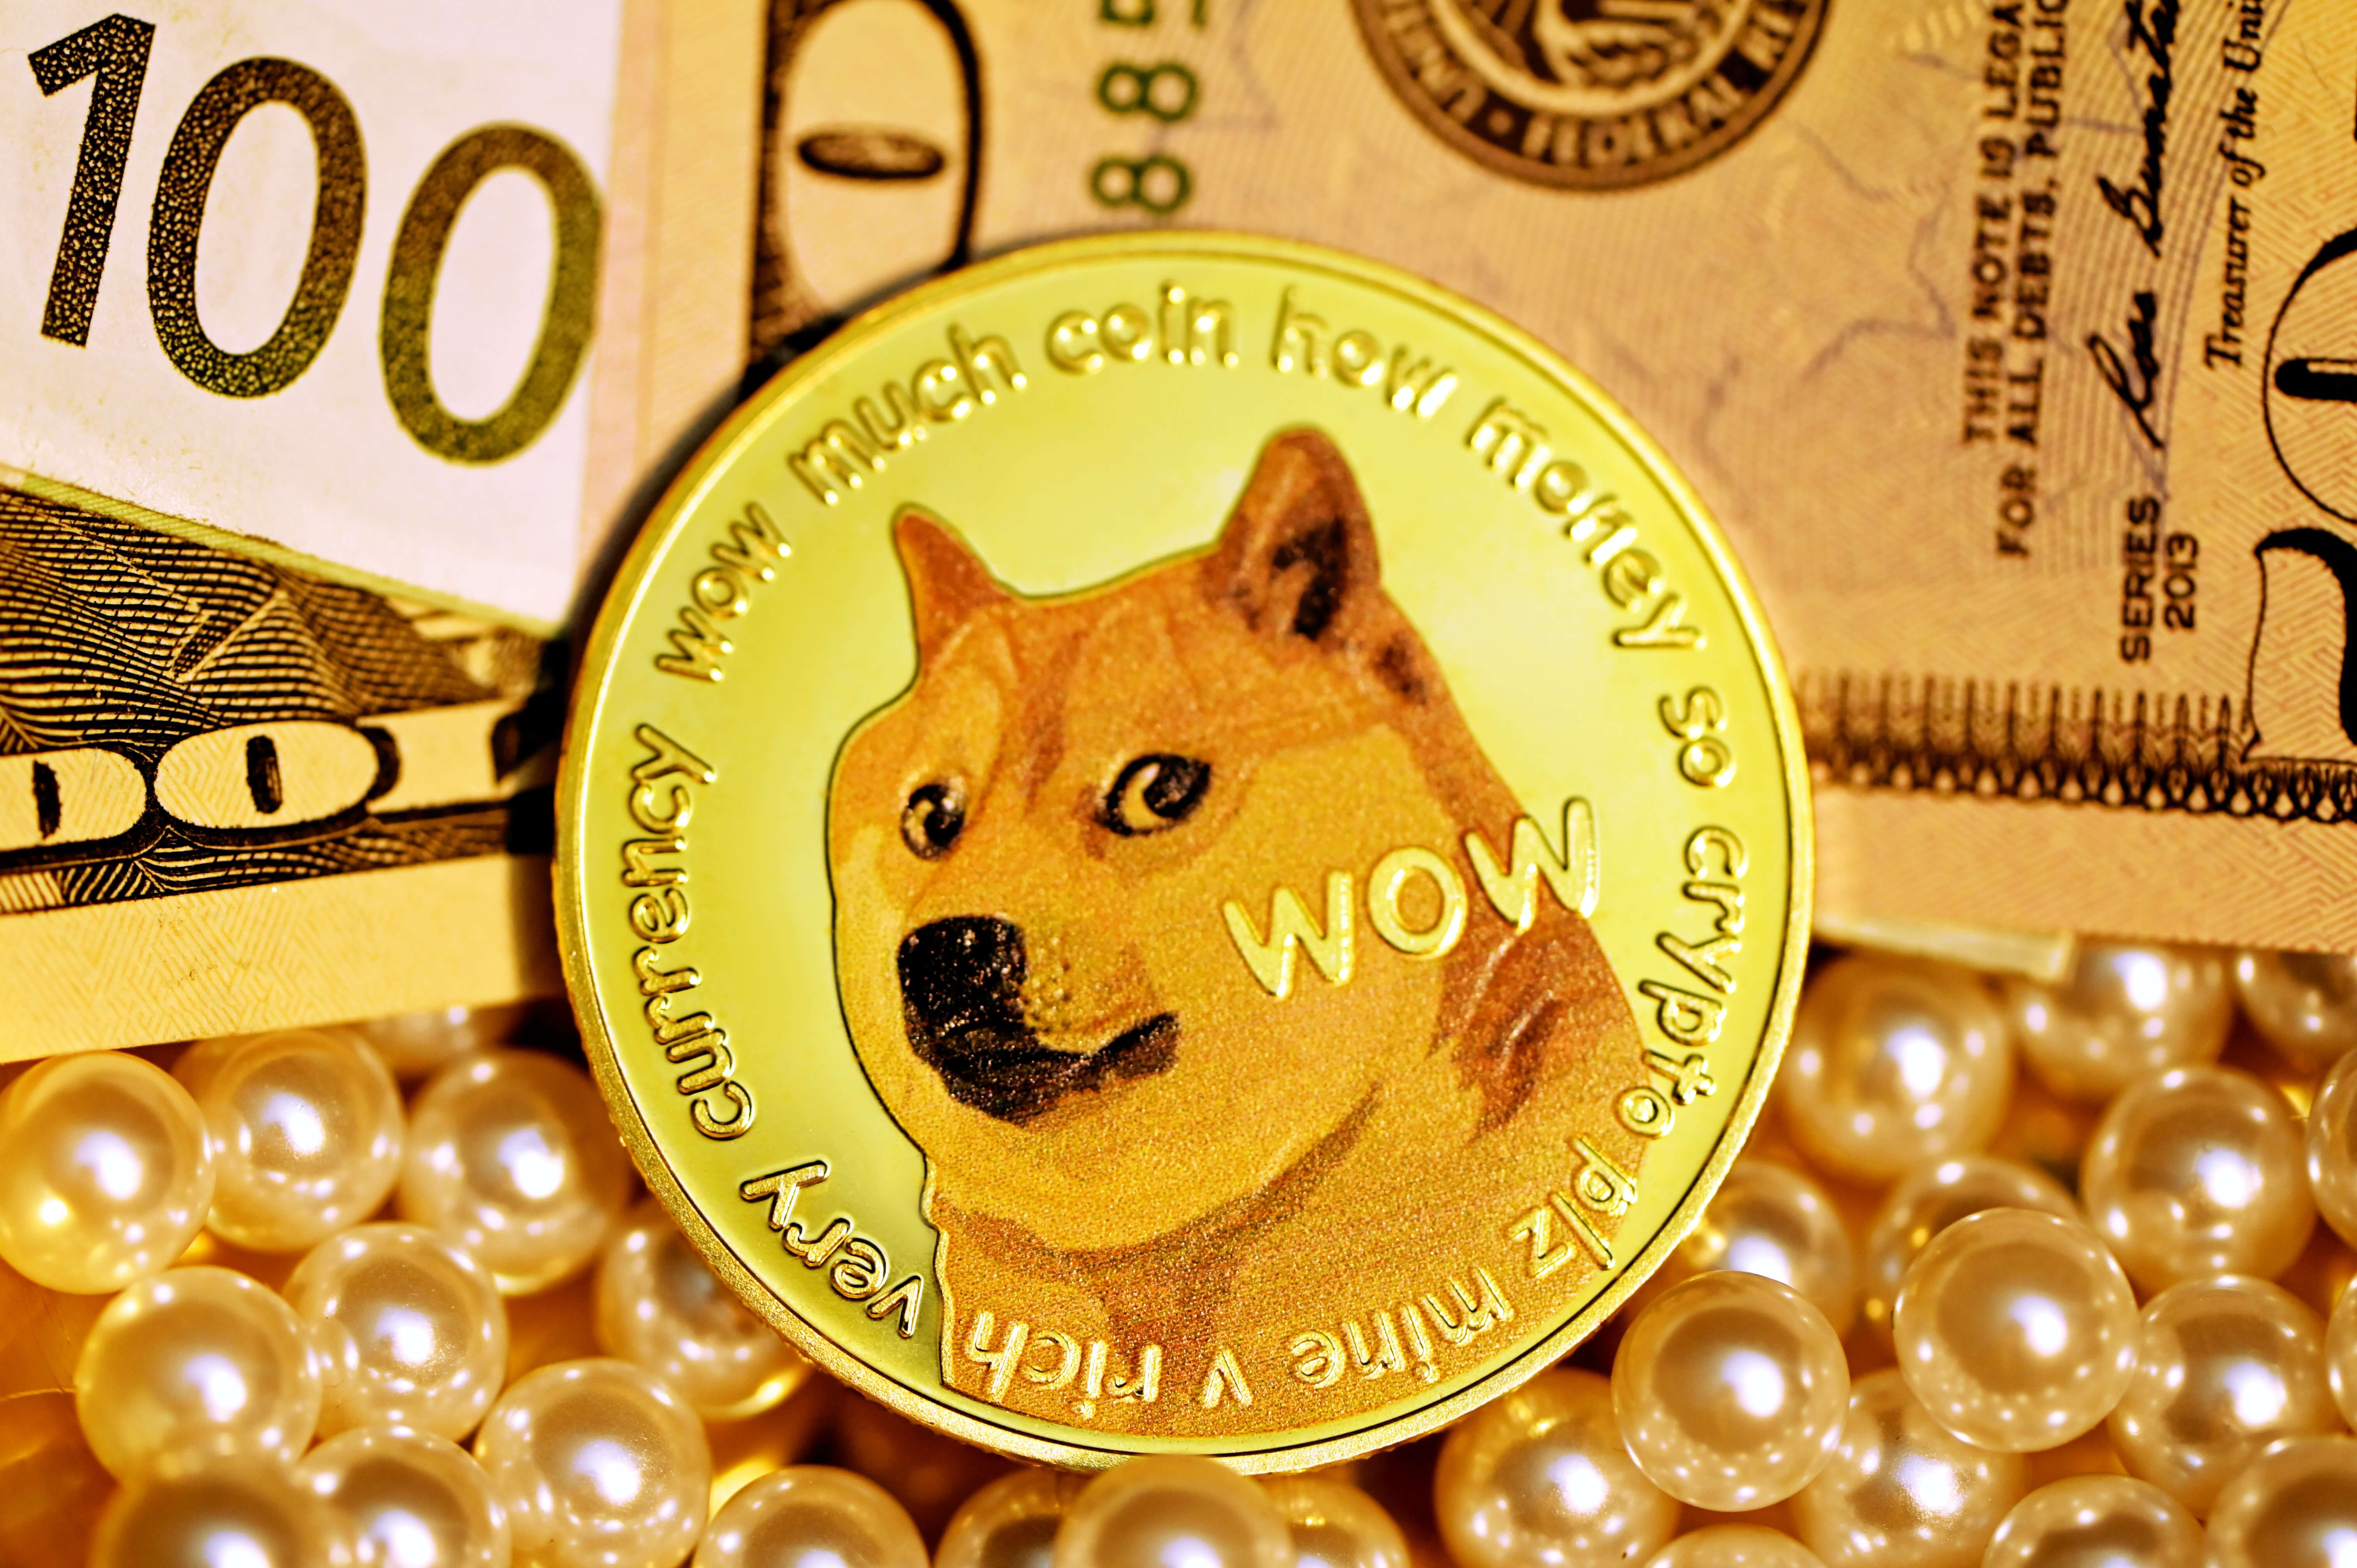 Cuban Continues Pushing Dogecoin For Payments, Musk Nods His Approval